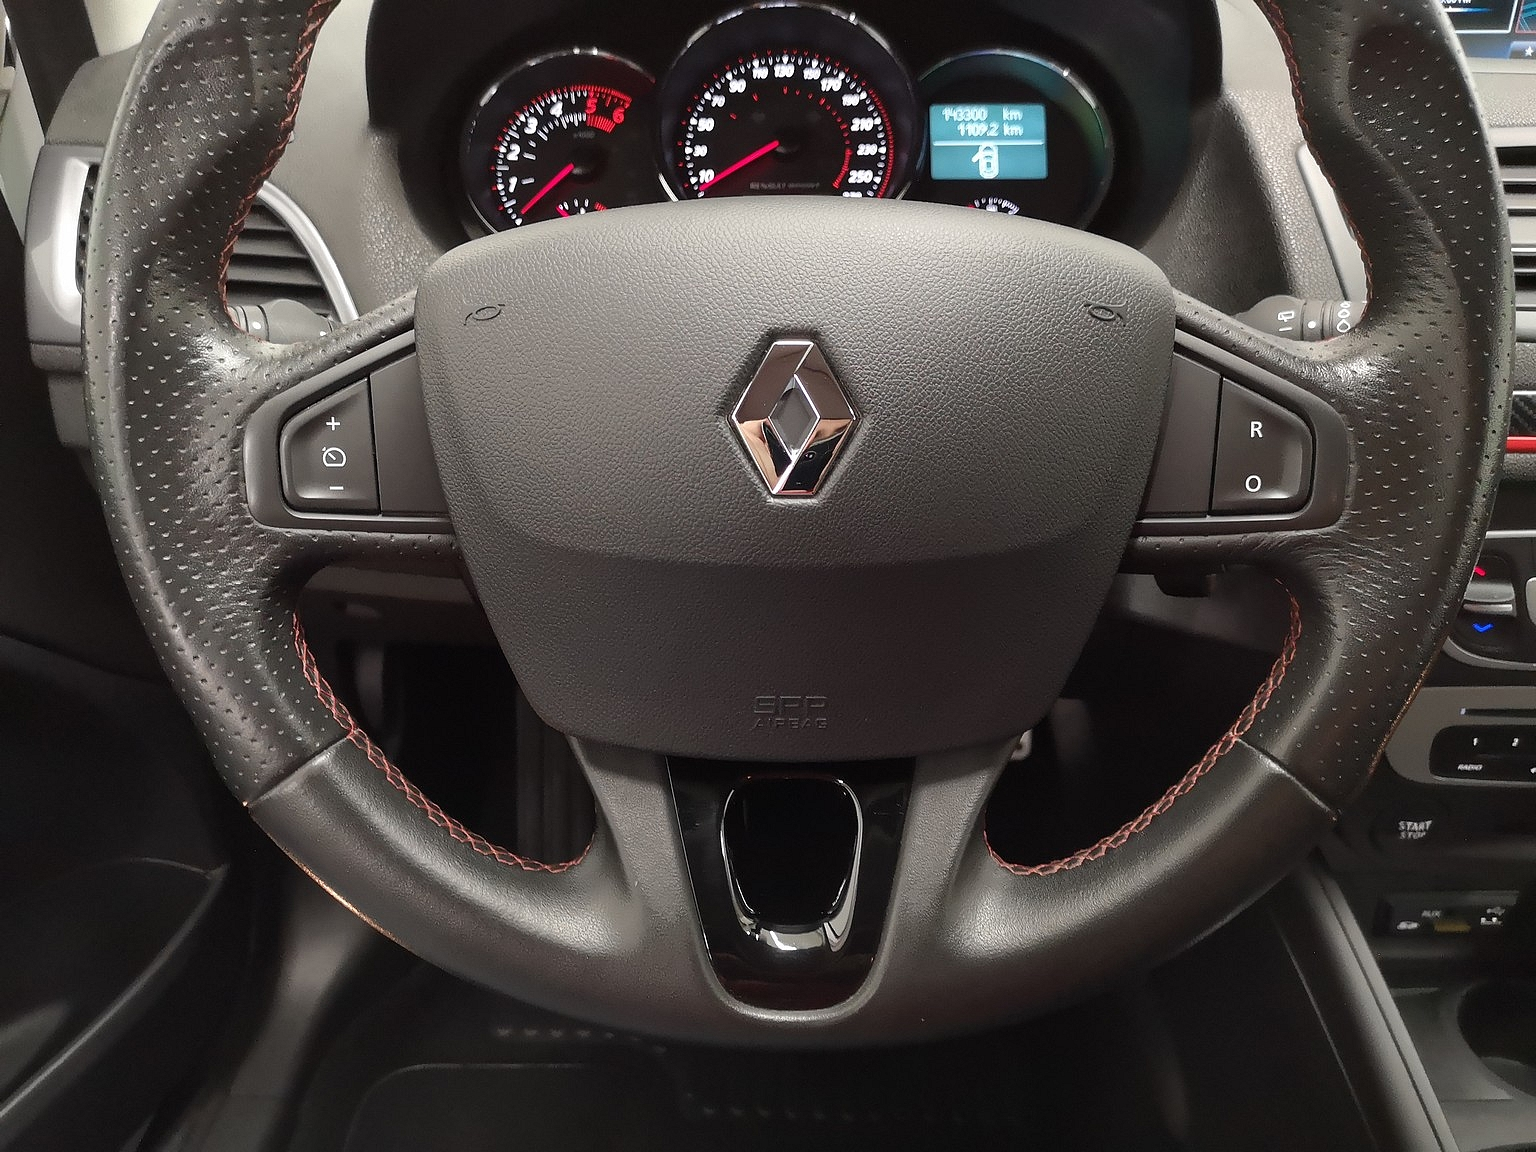 RENAULT MEGANE III COUPE 2015 à 9990 € - Photo n°12